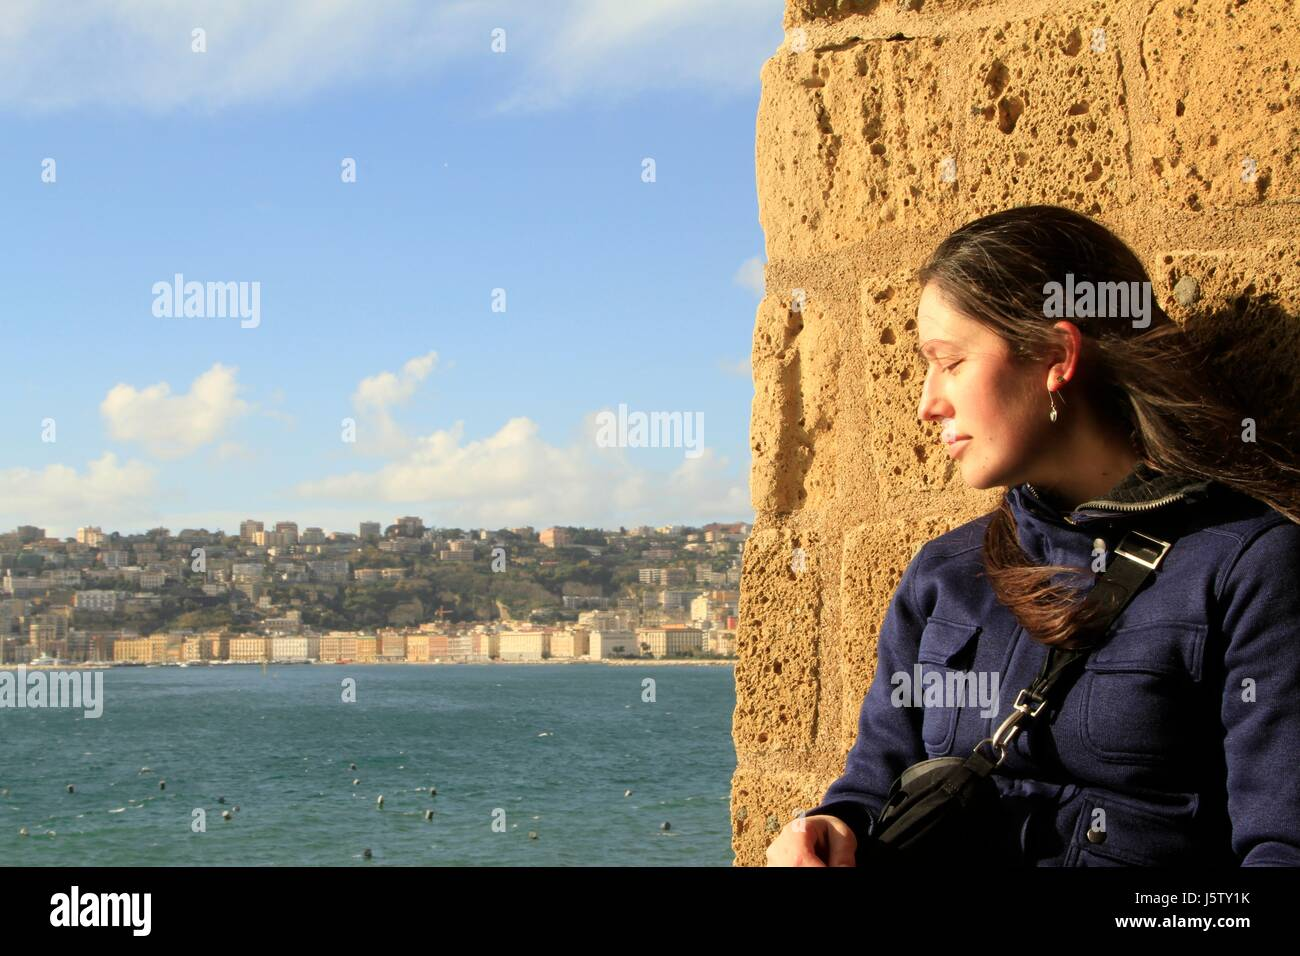 Taking a moment at the Castel dell'Ovo overlooking the Gulf of Naples, Campania, Italy - Stock Image